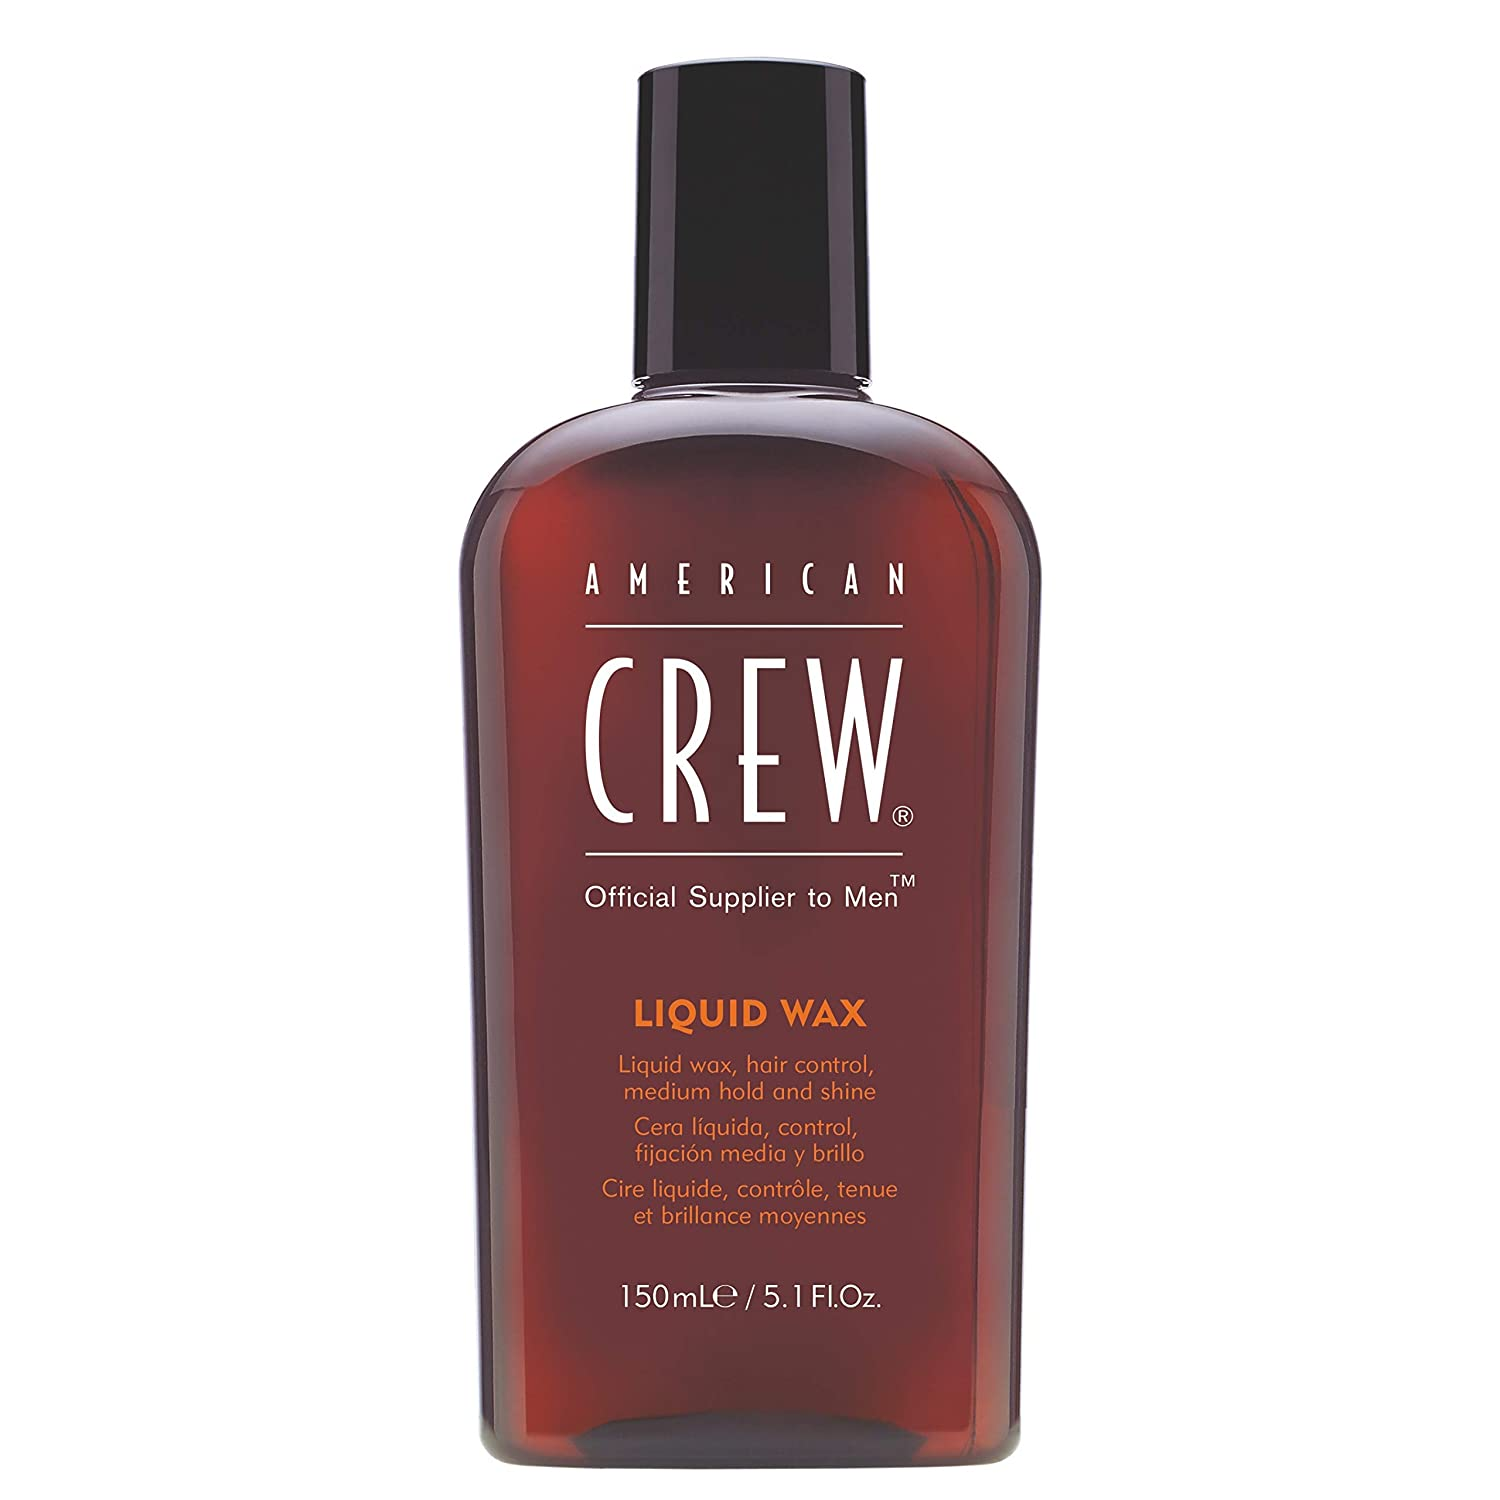 American Crew Cera Liquida (Fijación Media y Brillo Medio) 150 ml